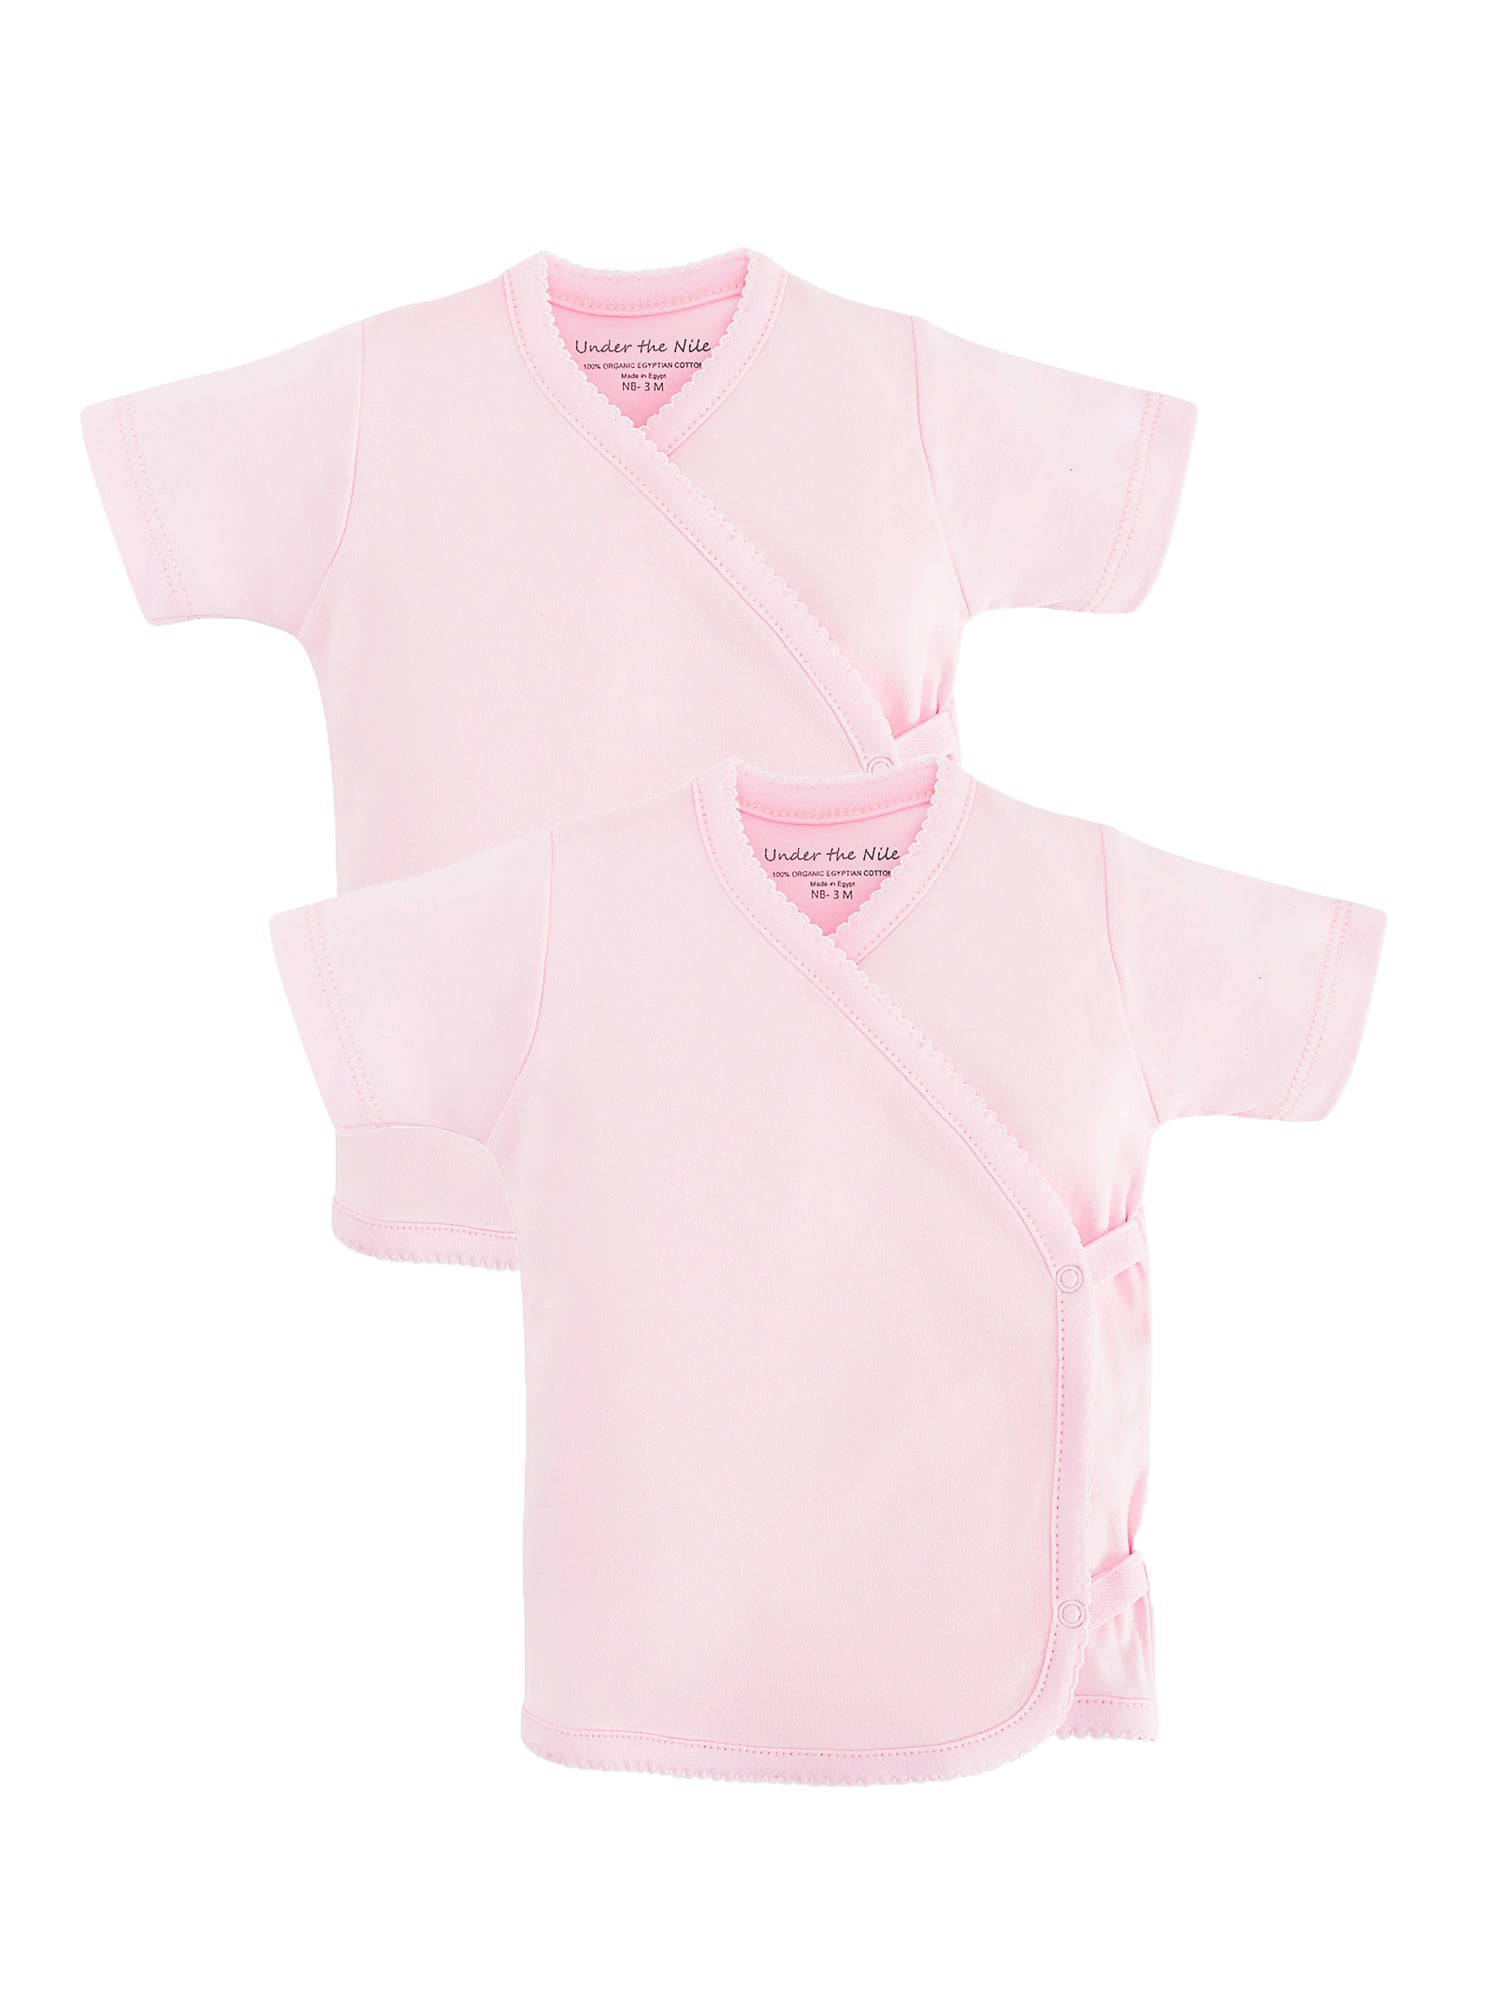 Short Sleeve Side Snap T-shirt - Pink Value Pack